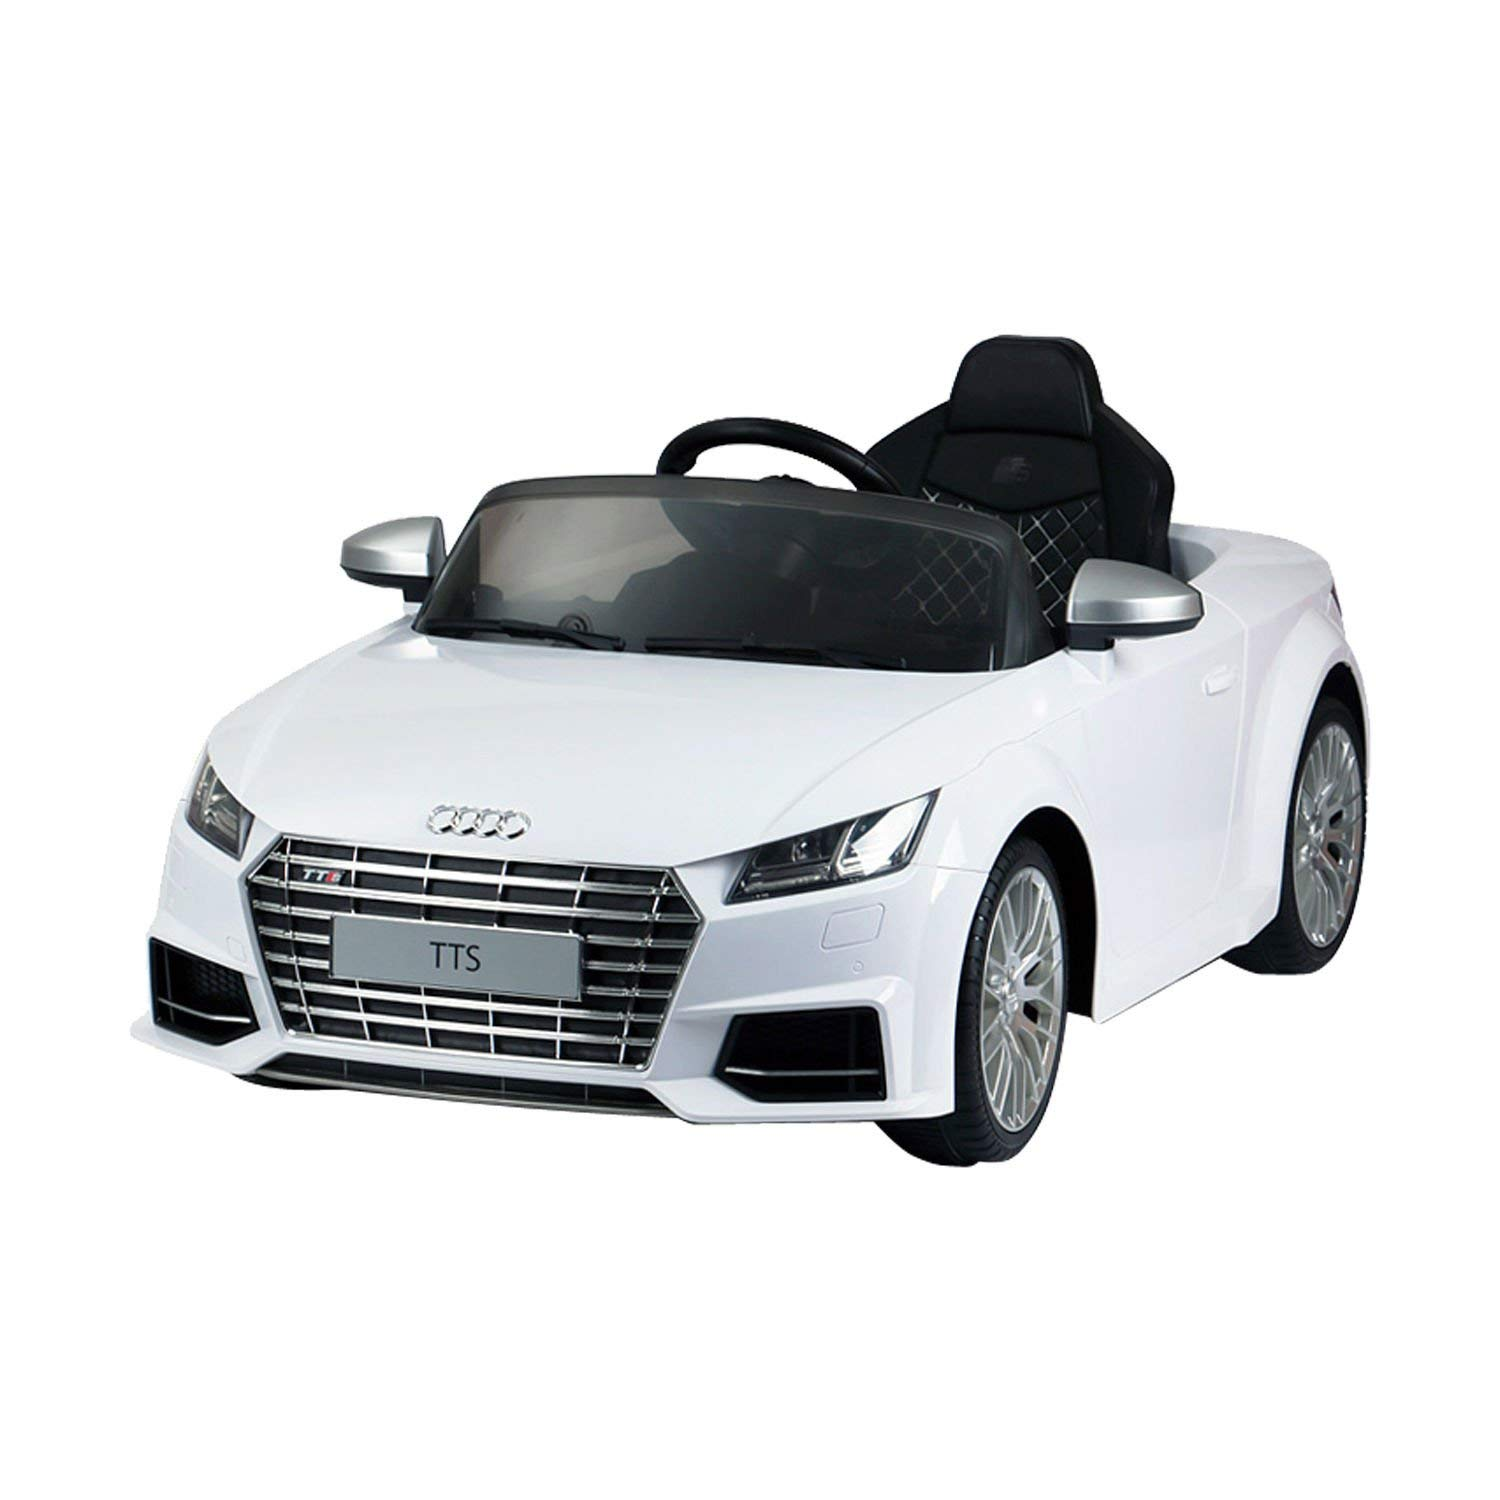 Kids Motorized Cars New Audi 6v Kids Electric Ride On Car with Remote Control